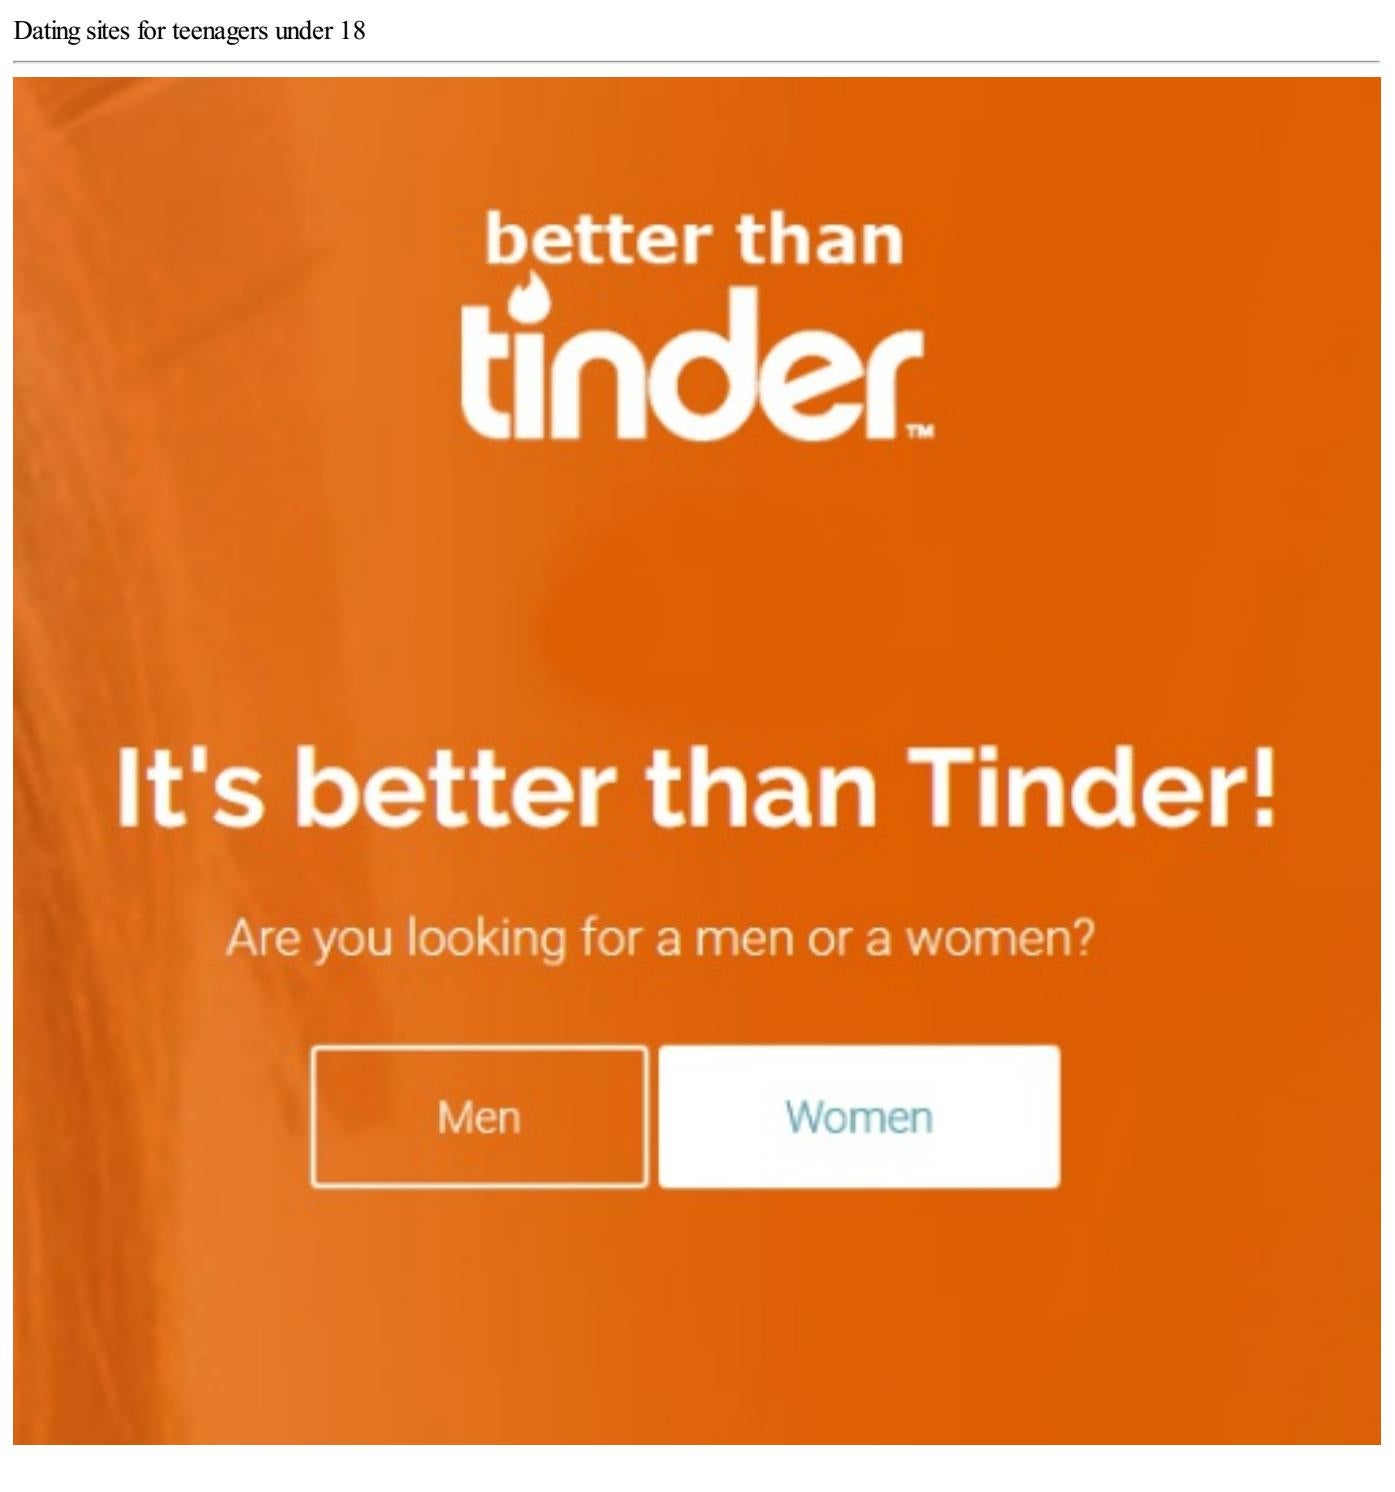 Dating sites under 18